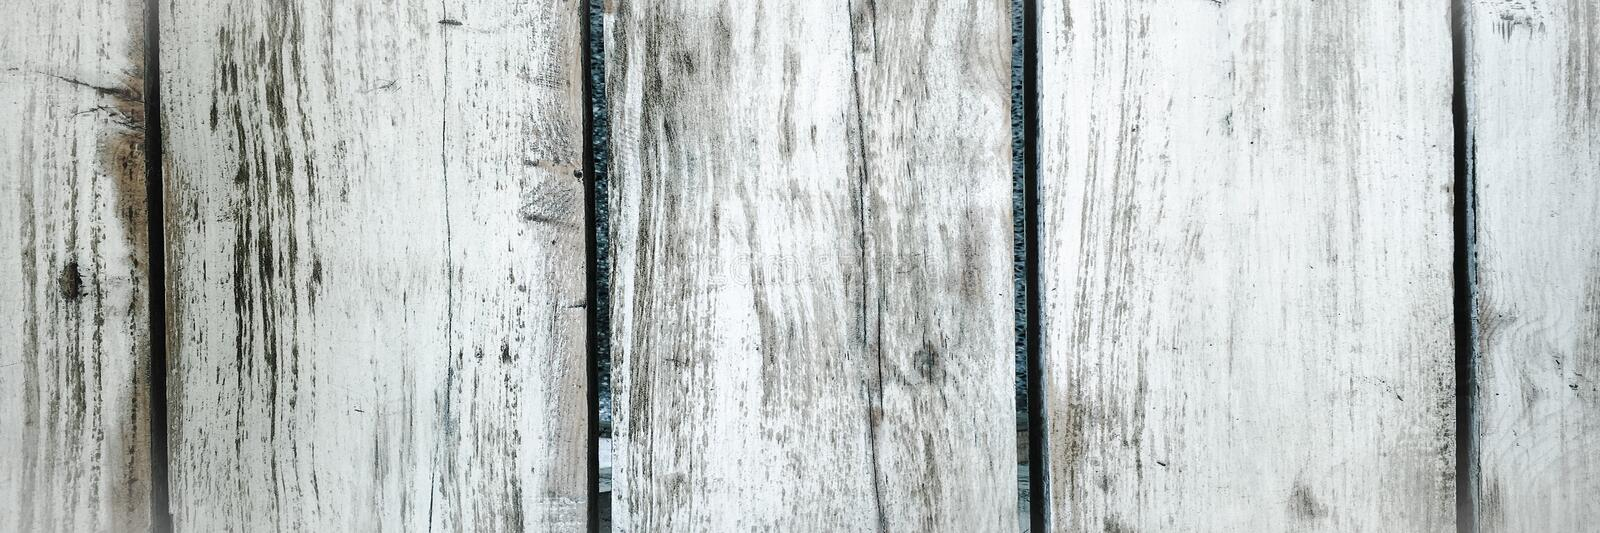 White washed wood texture. Light wood texture background.  royalty free stock photo